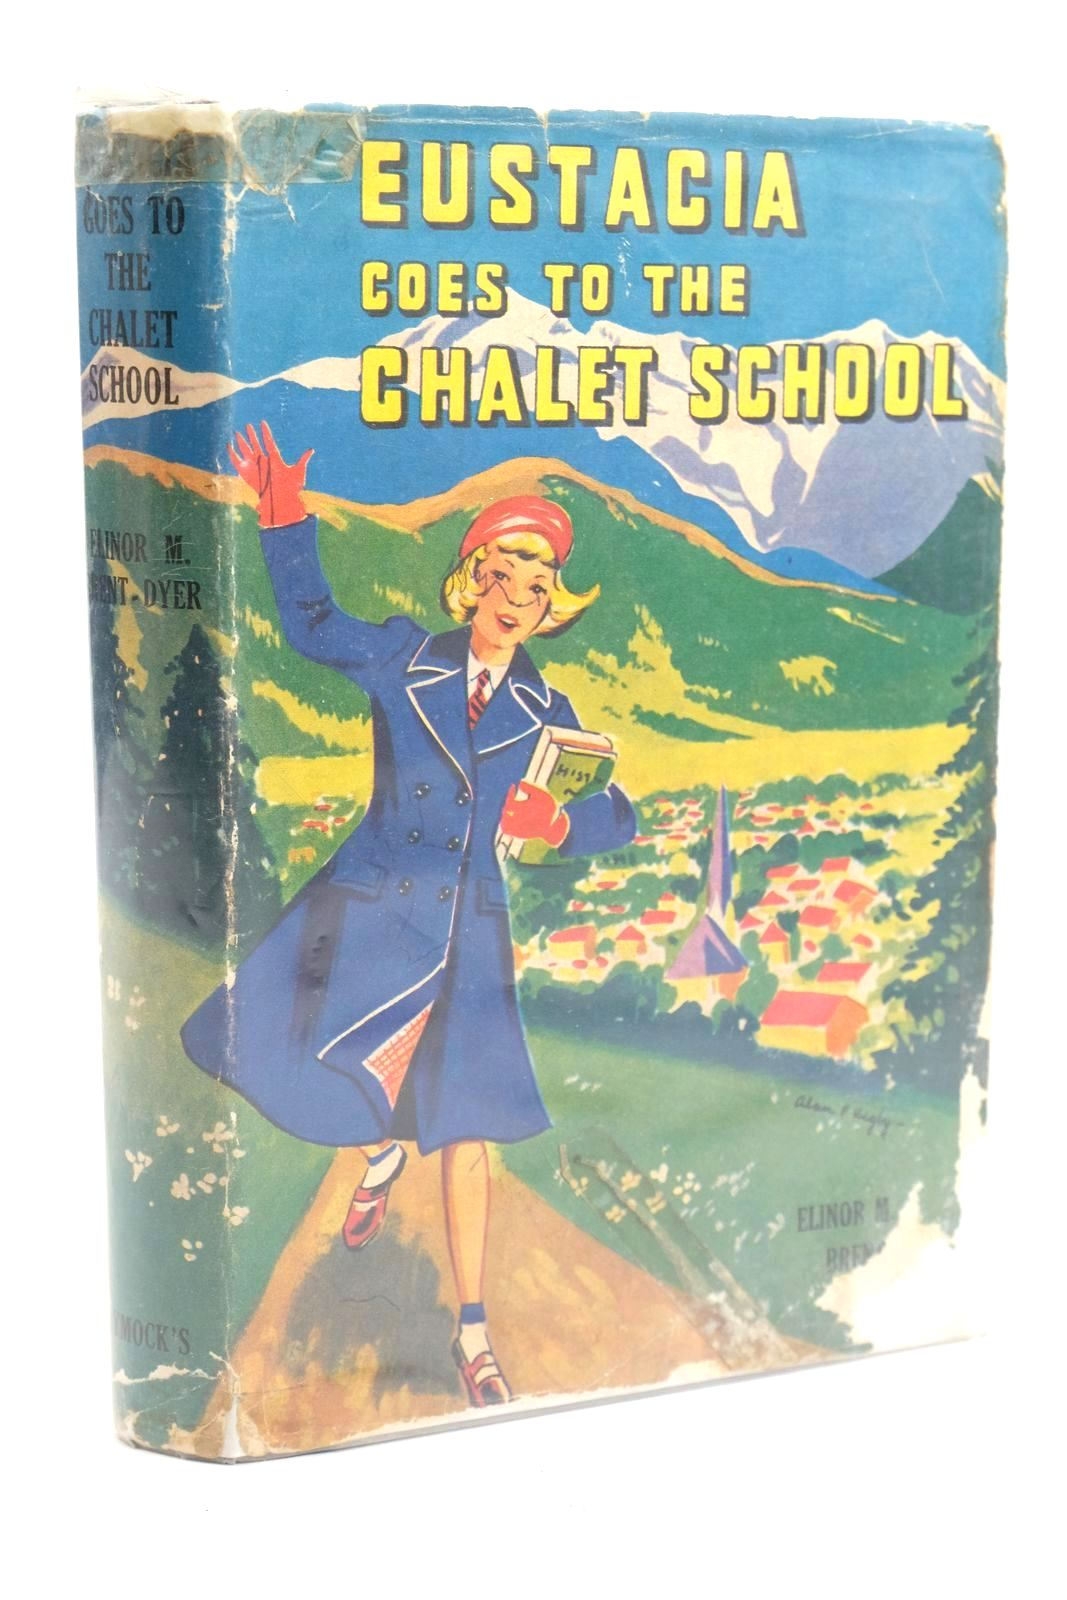 Photo of EUSTACIA GOES TO THE CHALET SCHOOL written by Brent-Dyer, Elinor M. published by Dymock's Book Arcade Ltd. (STOCK CODE: 1320044)  for sale by Stella & Rose's Books